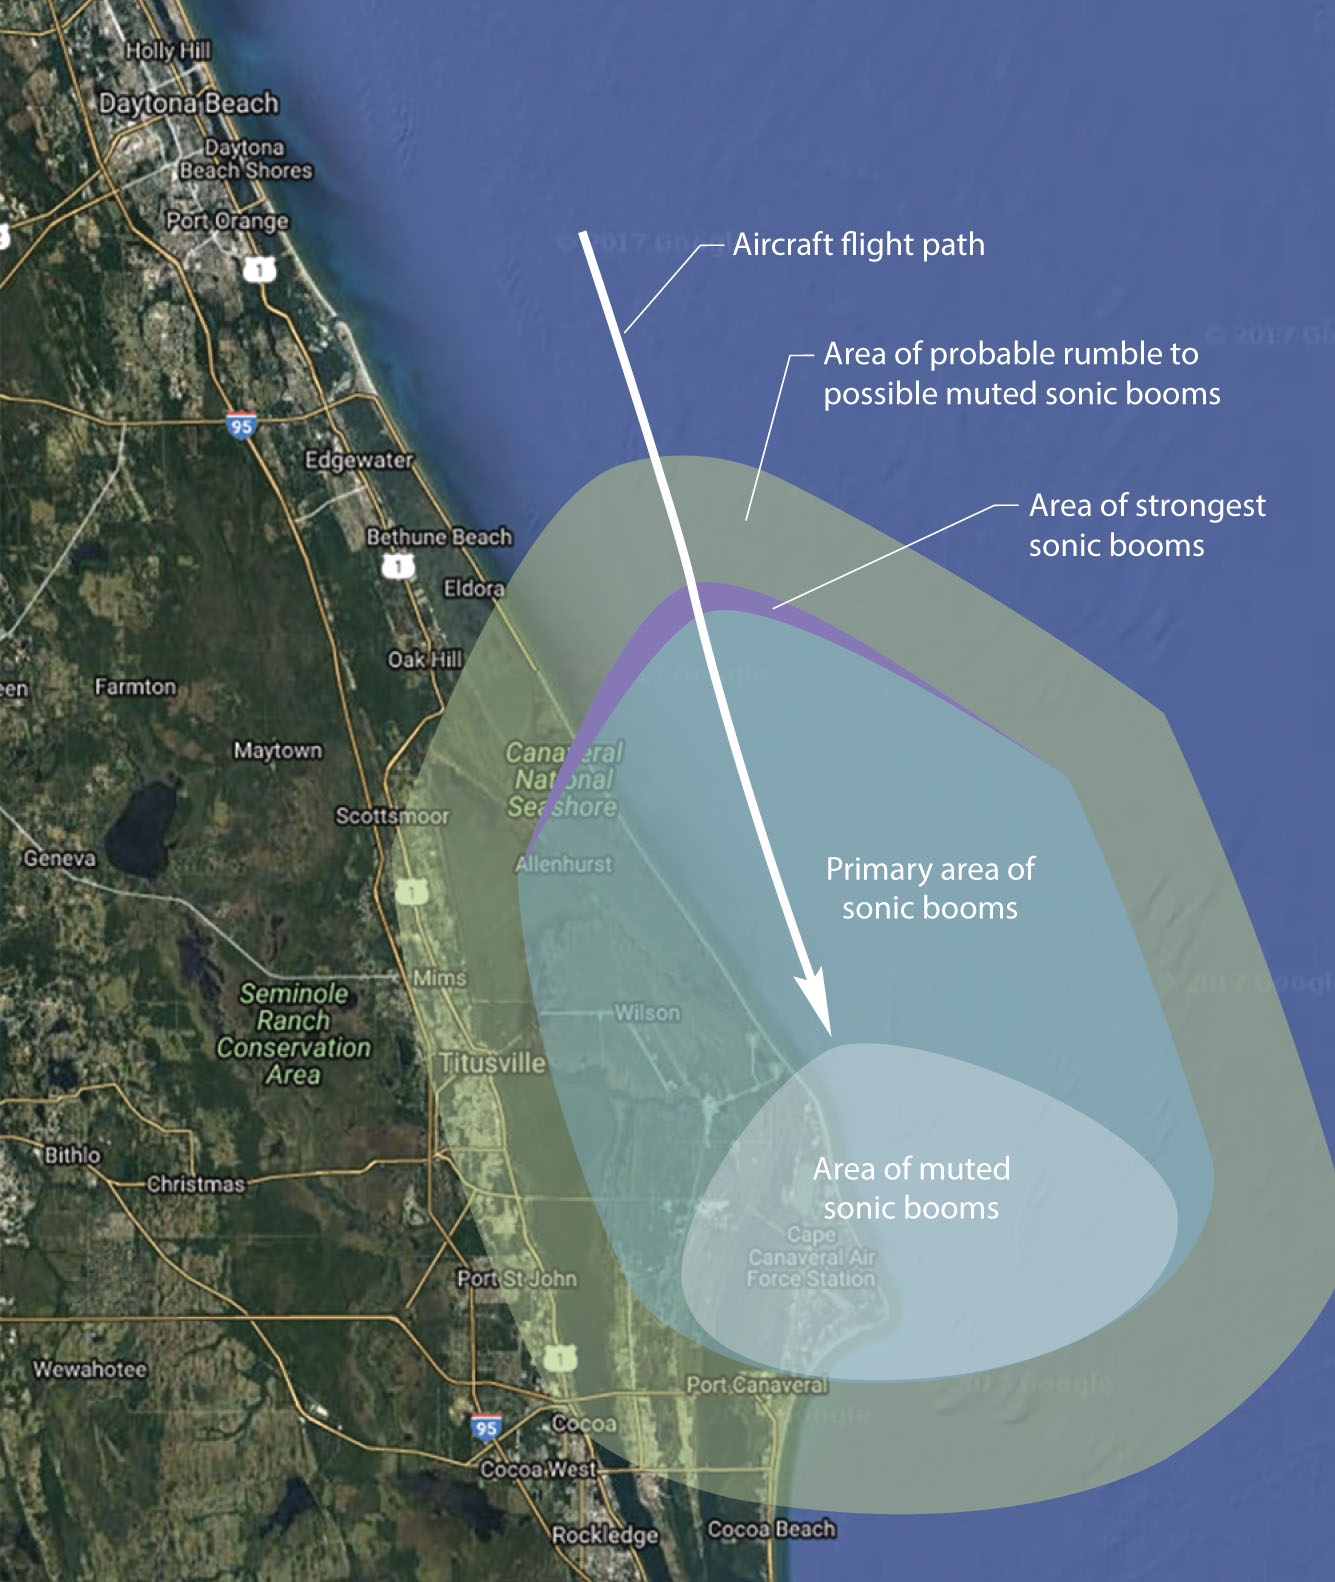 Nasa Flights To Produce Sonic Booms At Kennedy E Center For Supersonic Research